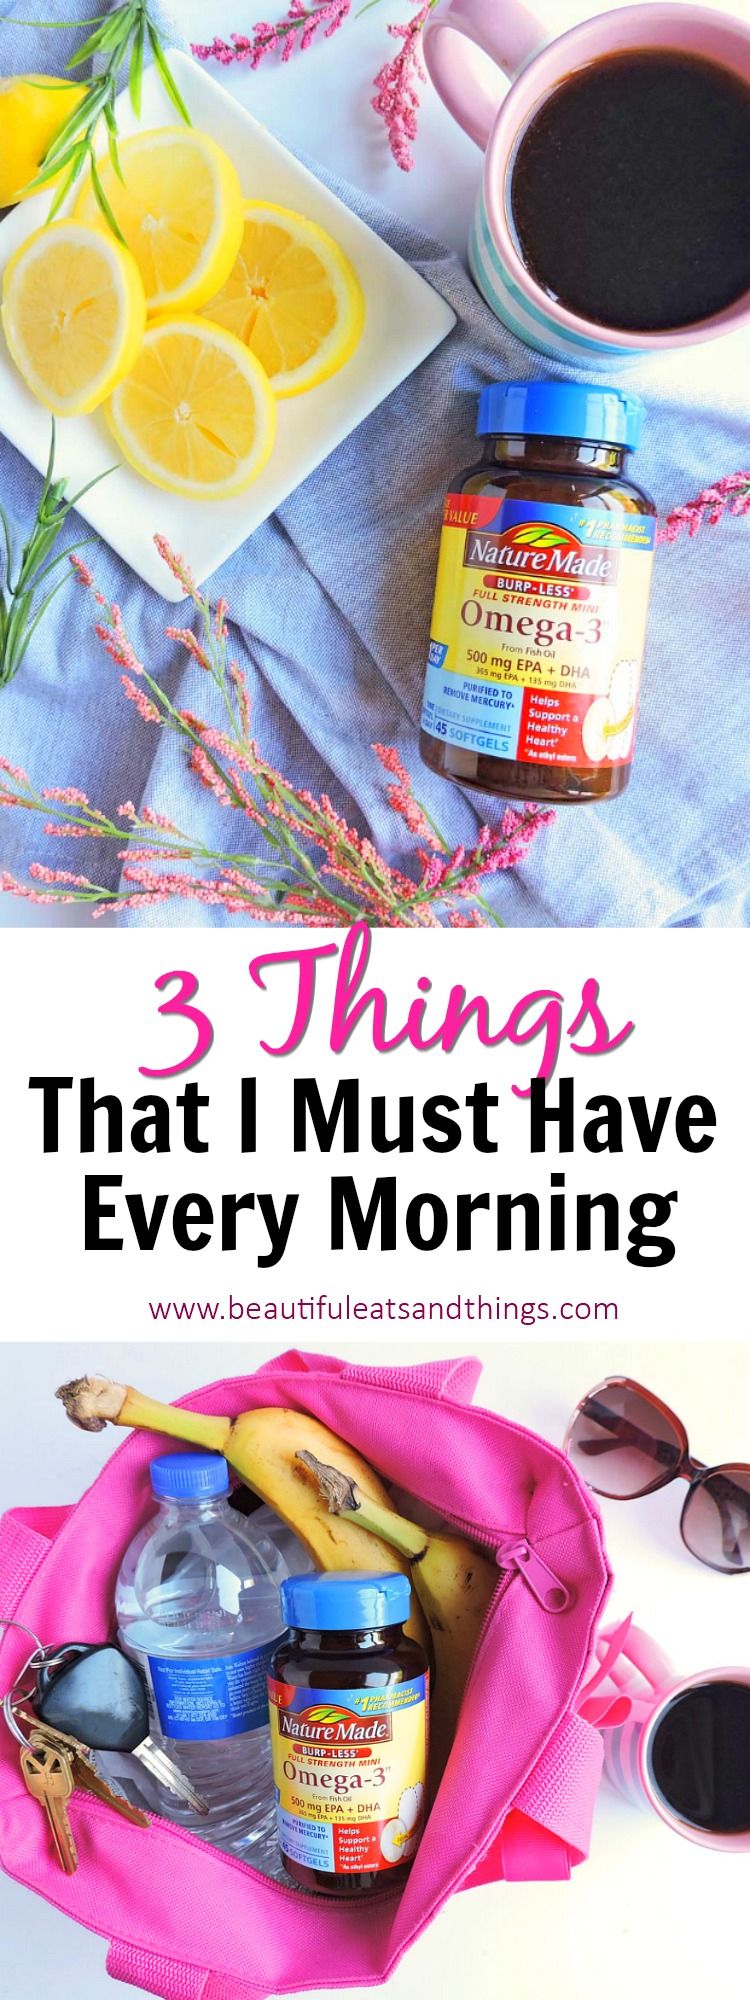 My top 3 things that i must have every morning